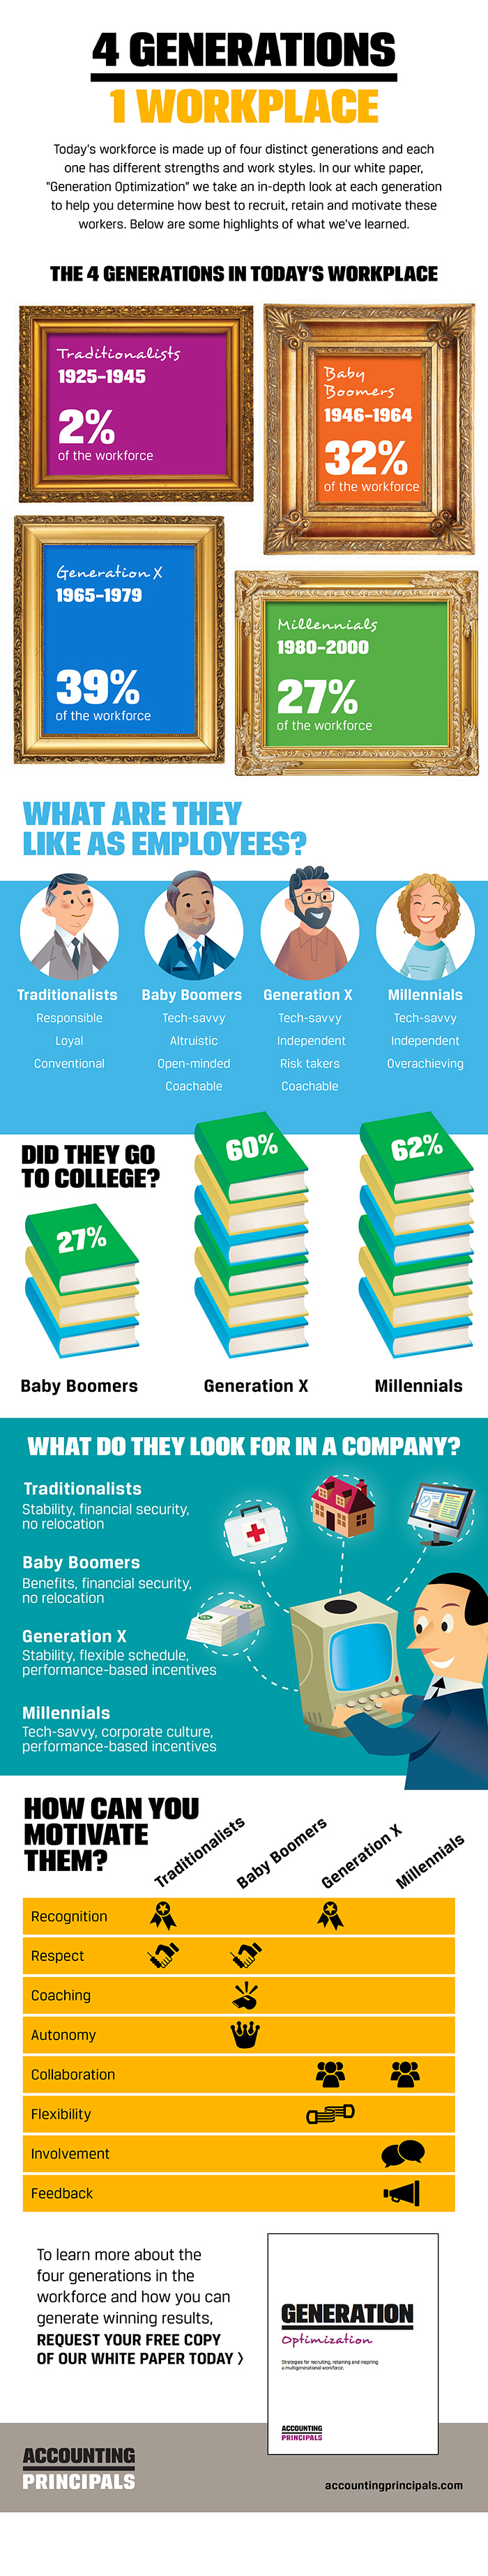 Generational diversity in the workplace (infographic)